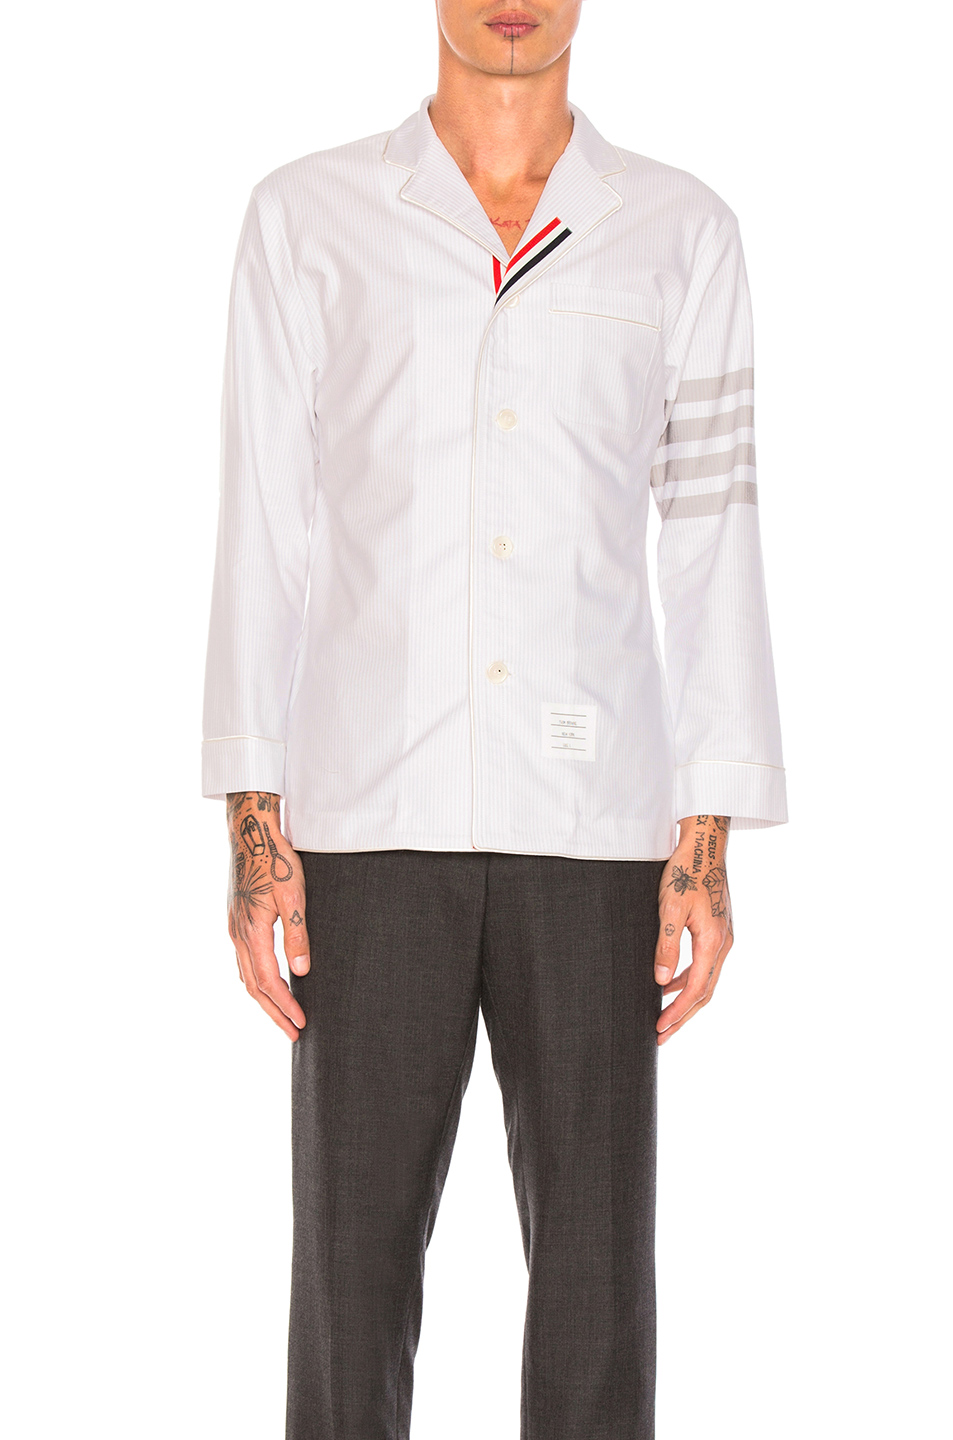 Thom Browne Oxford Pajama Shirt in Gray,Stripes